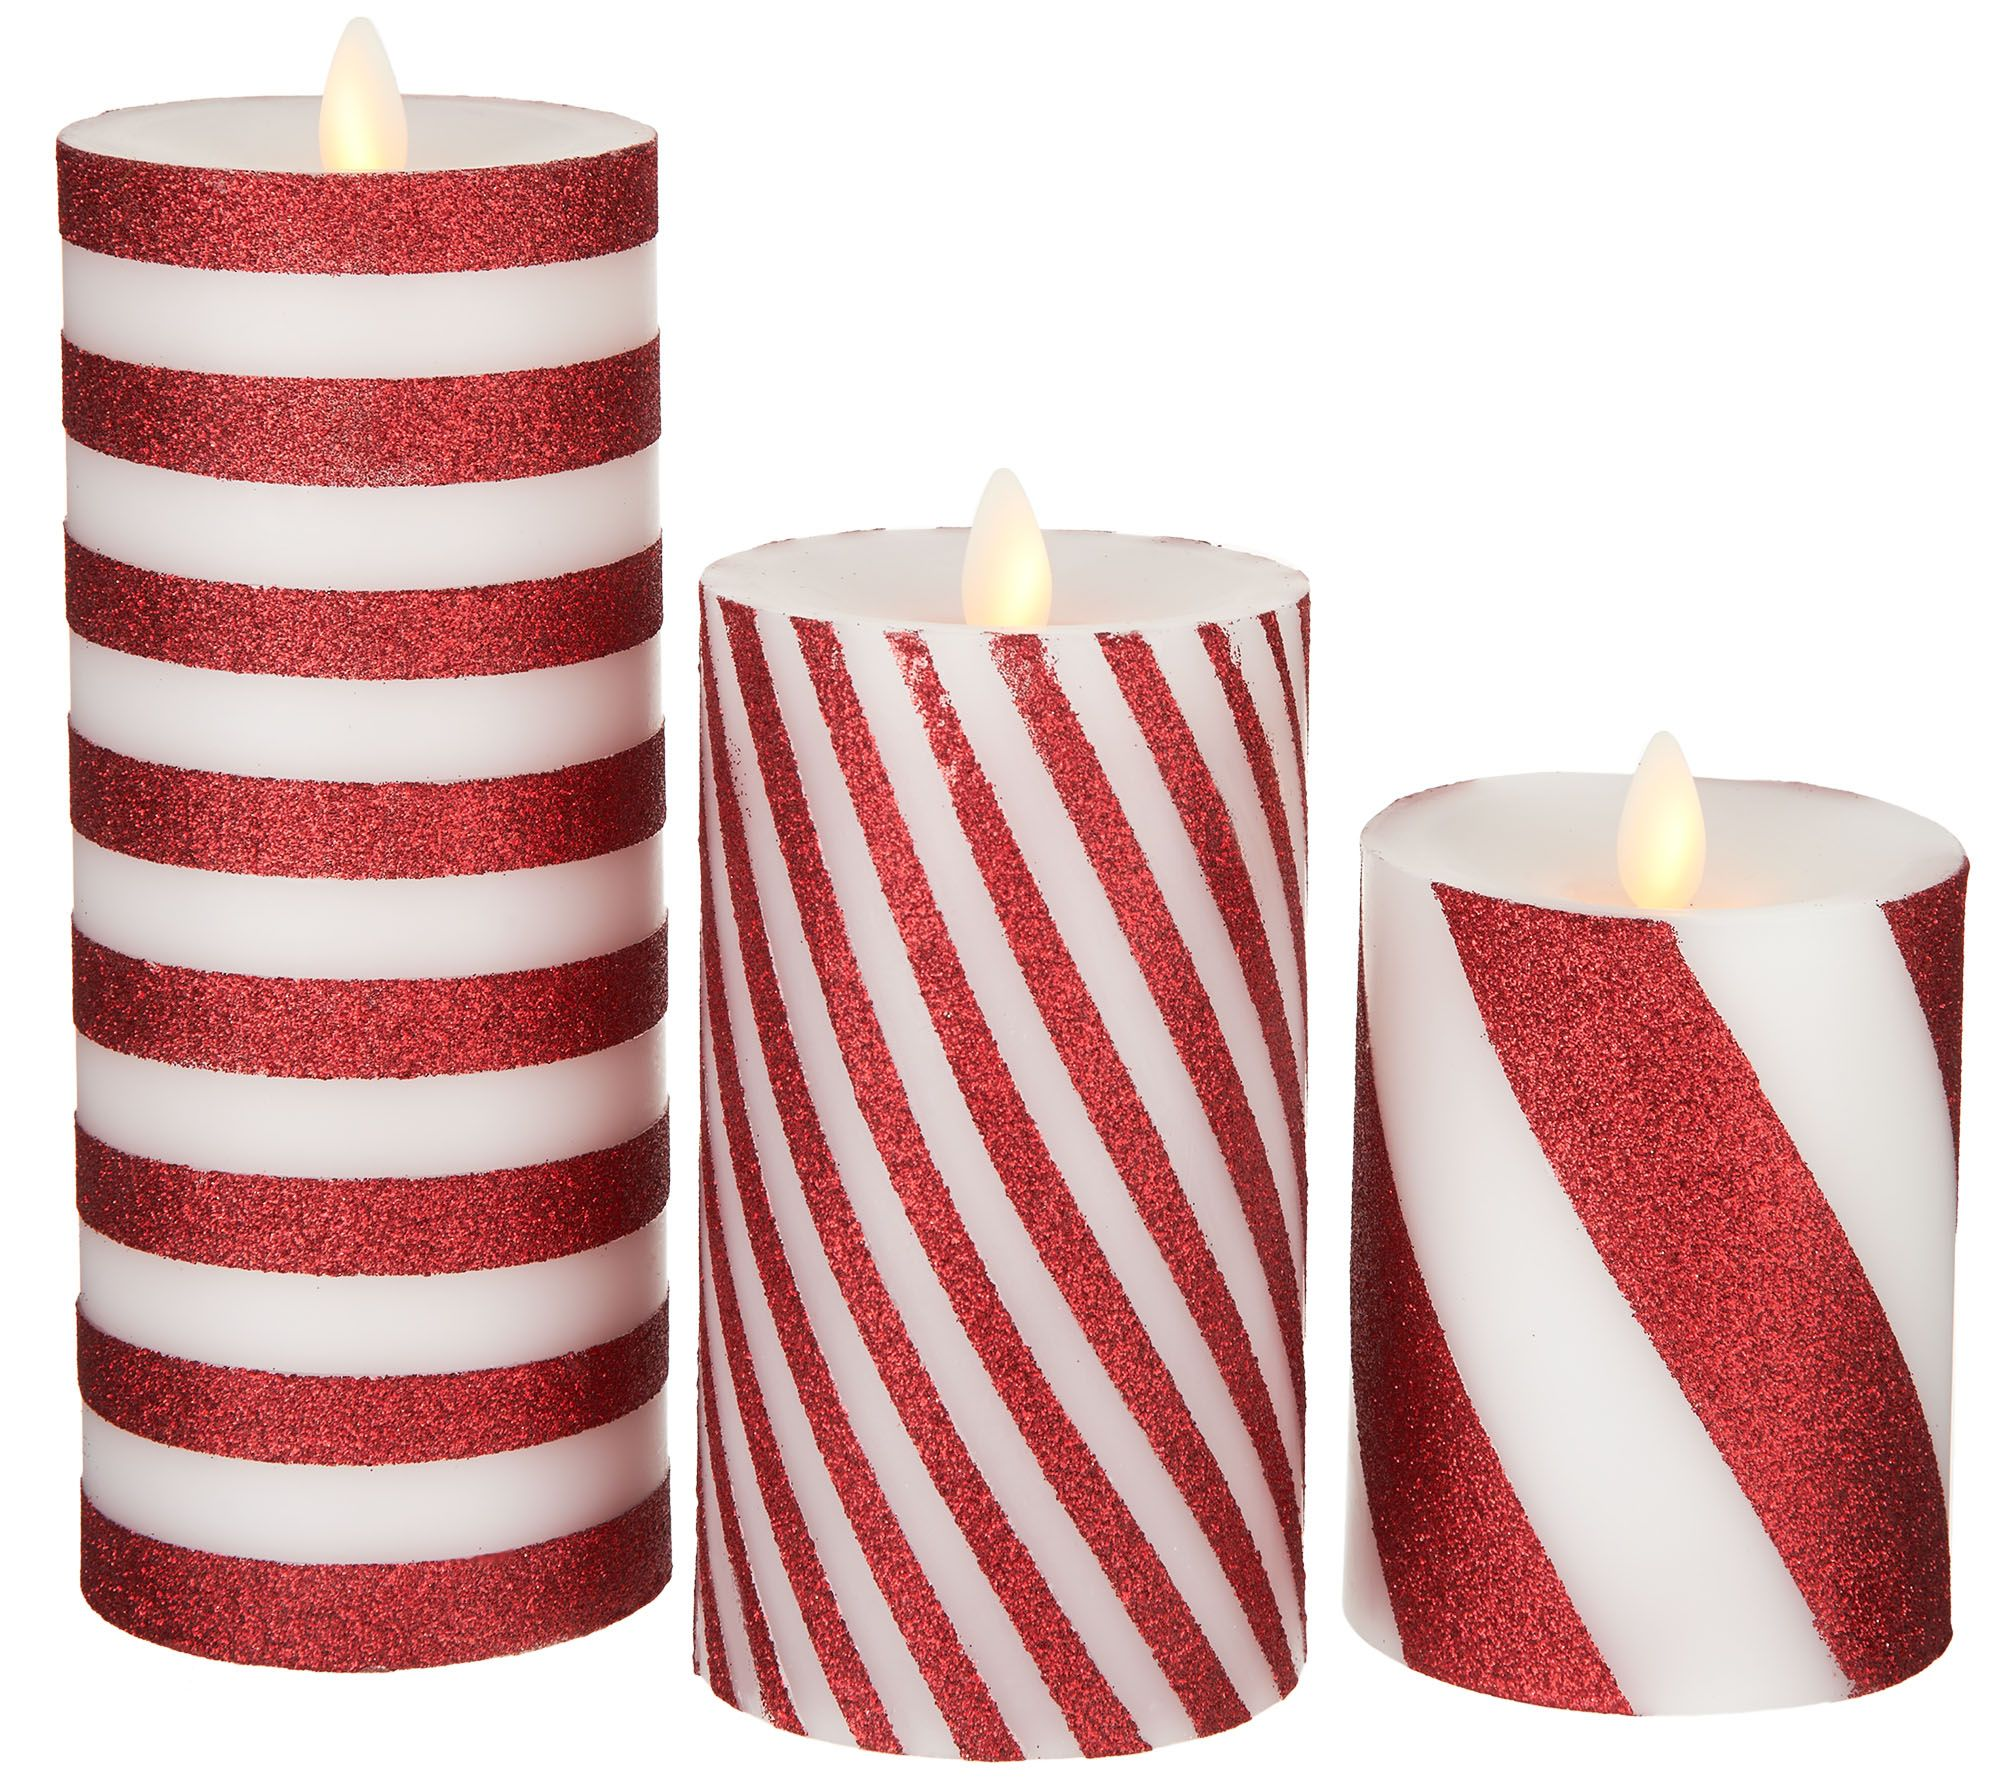 bethlehem lighting. Bethlehem Lights Set Of 3 Glitter Striped Touch Candles - Page 1 \u2014 QVC.com Lighting